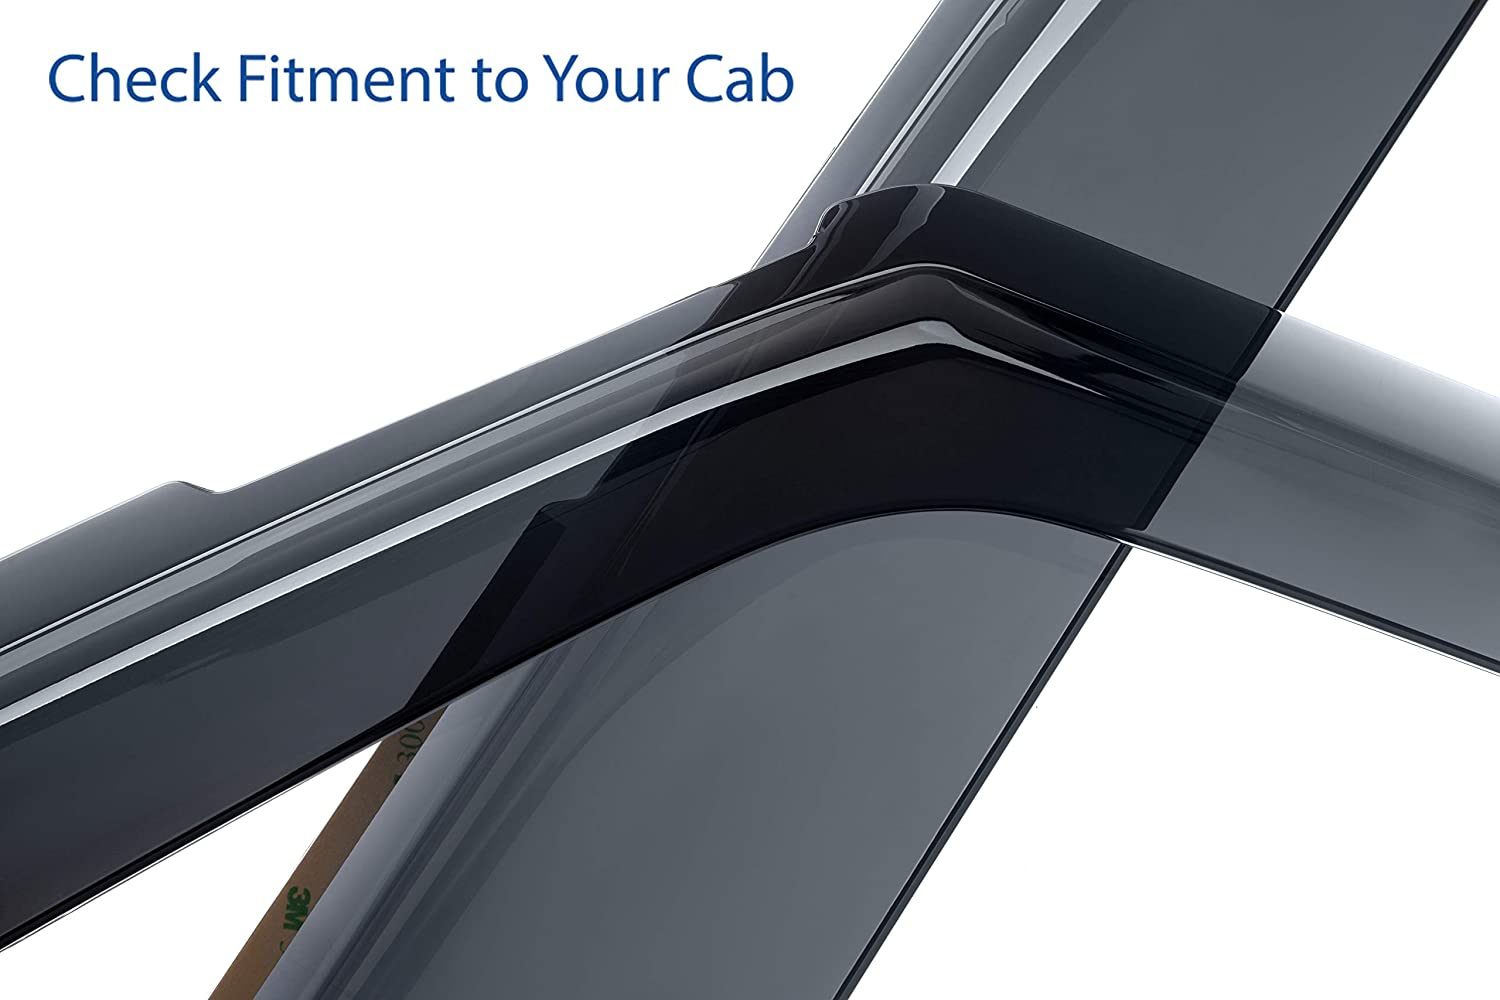 Goodyear Shatterproof Side Window Deflectors for Trucks Ford F-150 2015-2019 SuperCab GY003113 Tape-on Rain Guards Vent Window Visors 4 Pieces